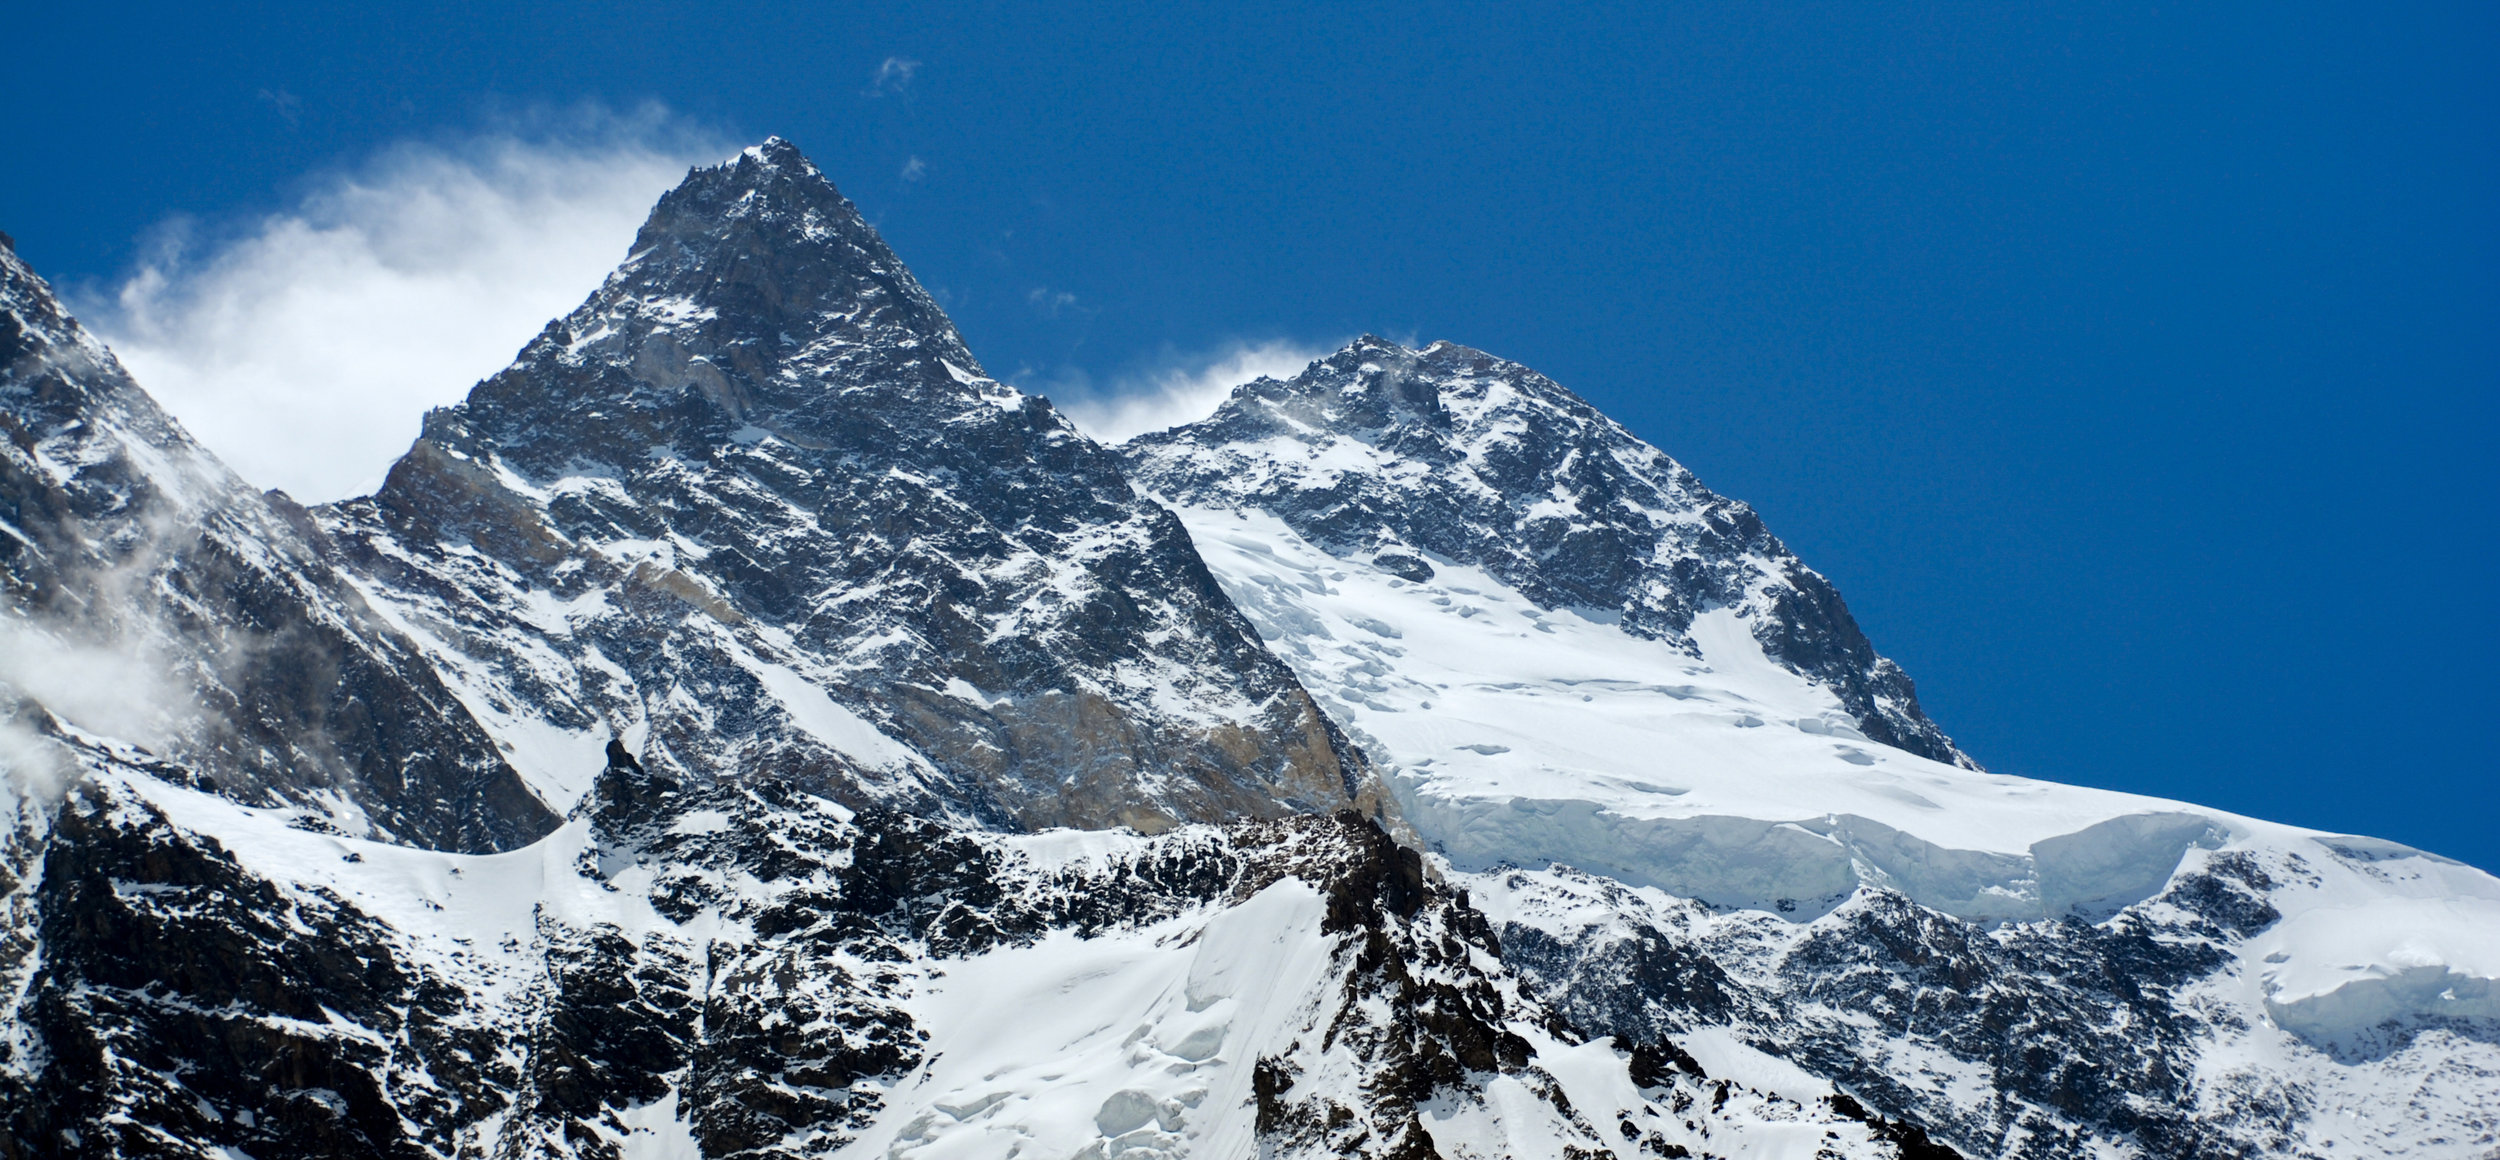 Broad Peak (highest point on right) viewed from the Gilkey memorial near K2 basecamp. Courtesy Dave Ohlson.